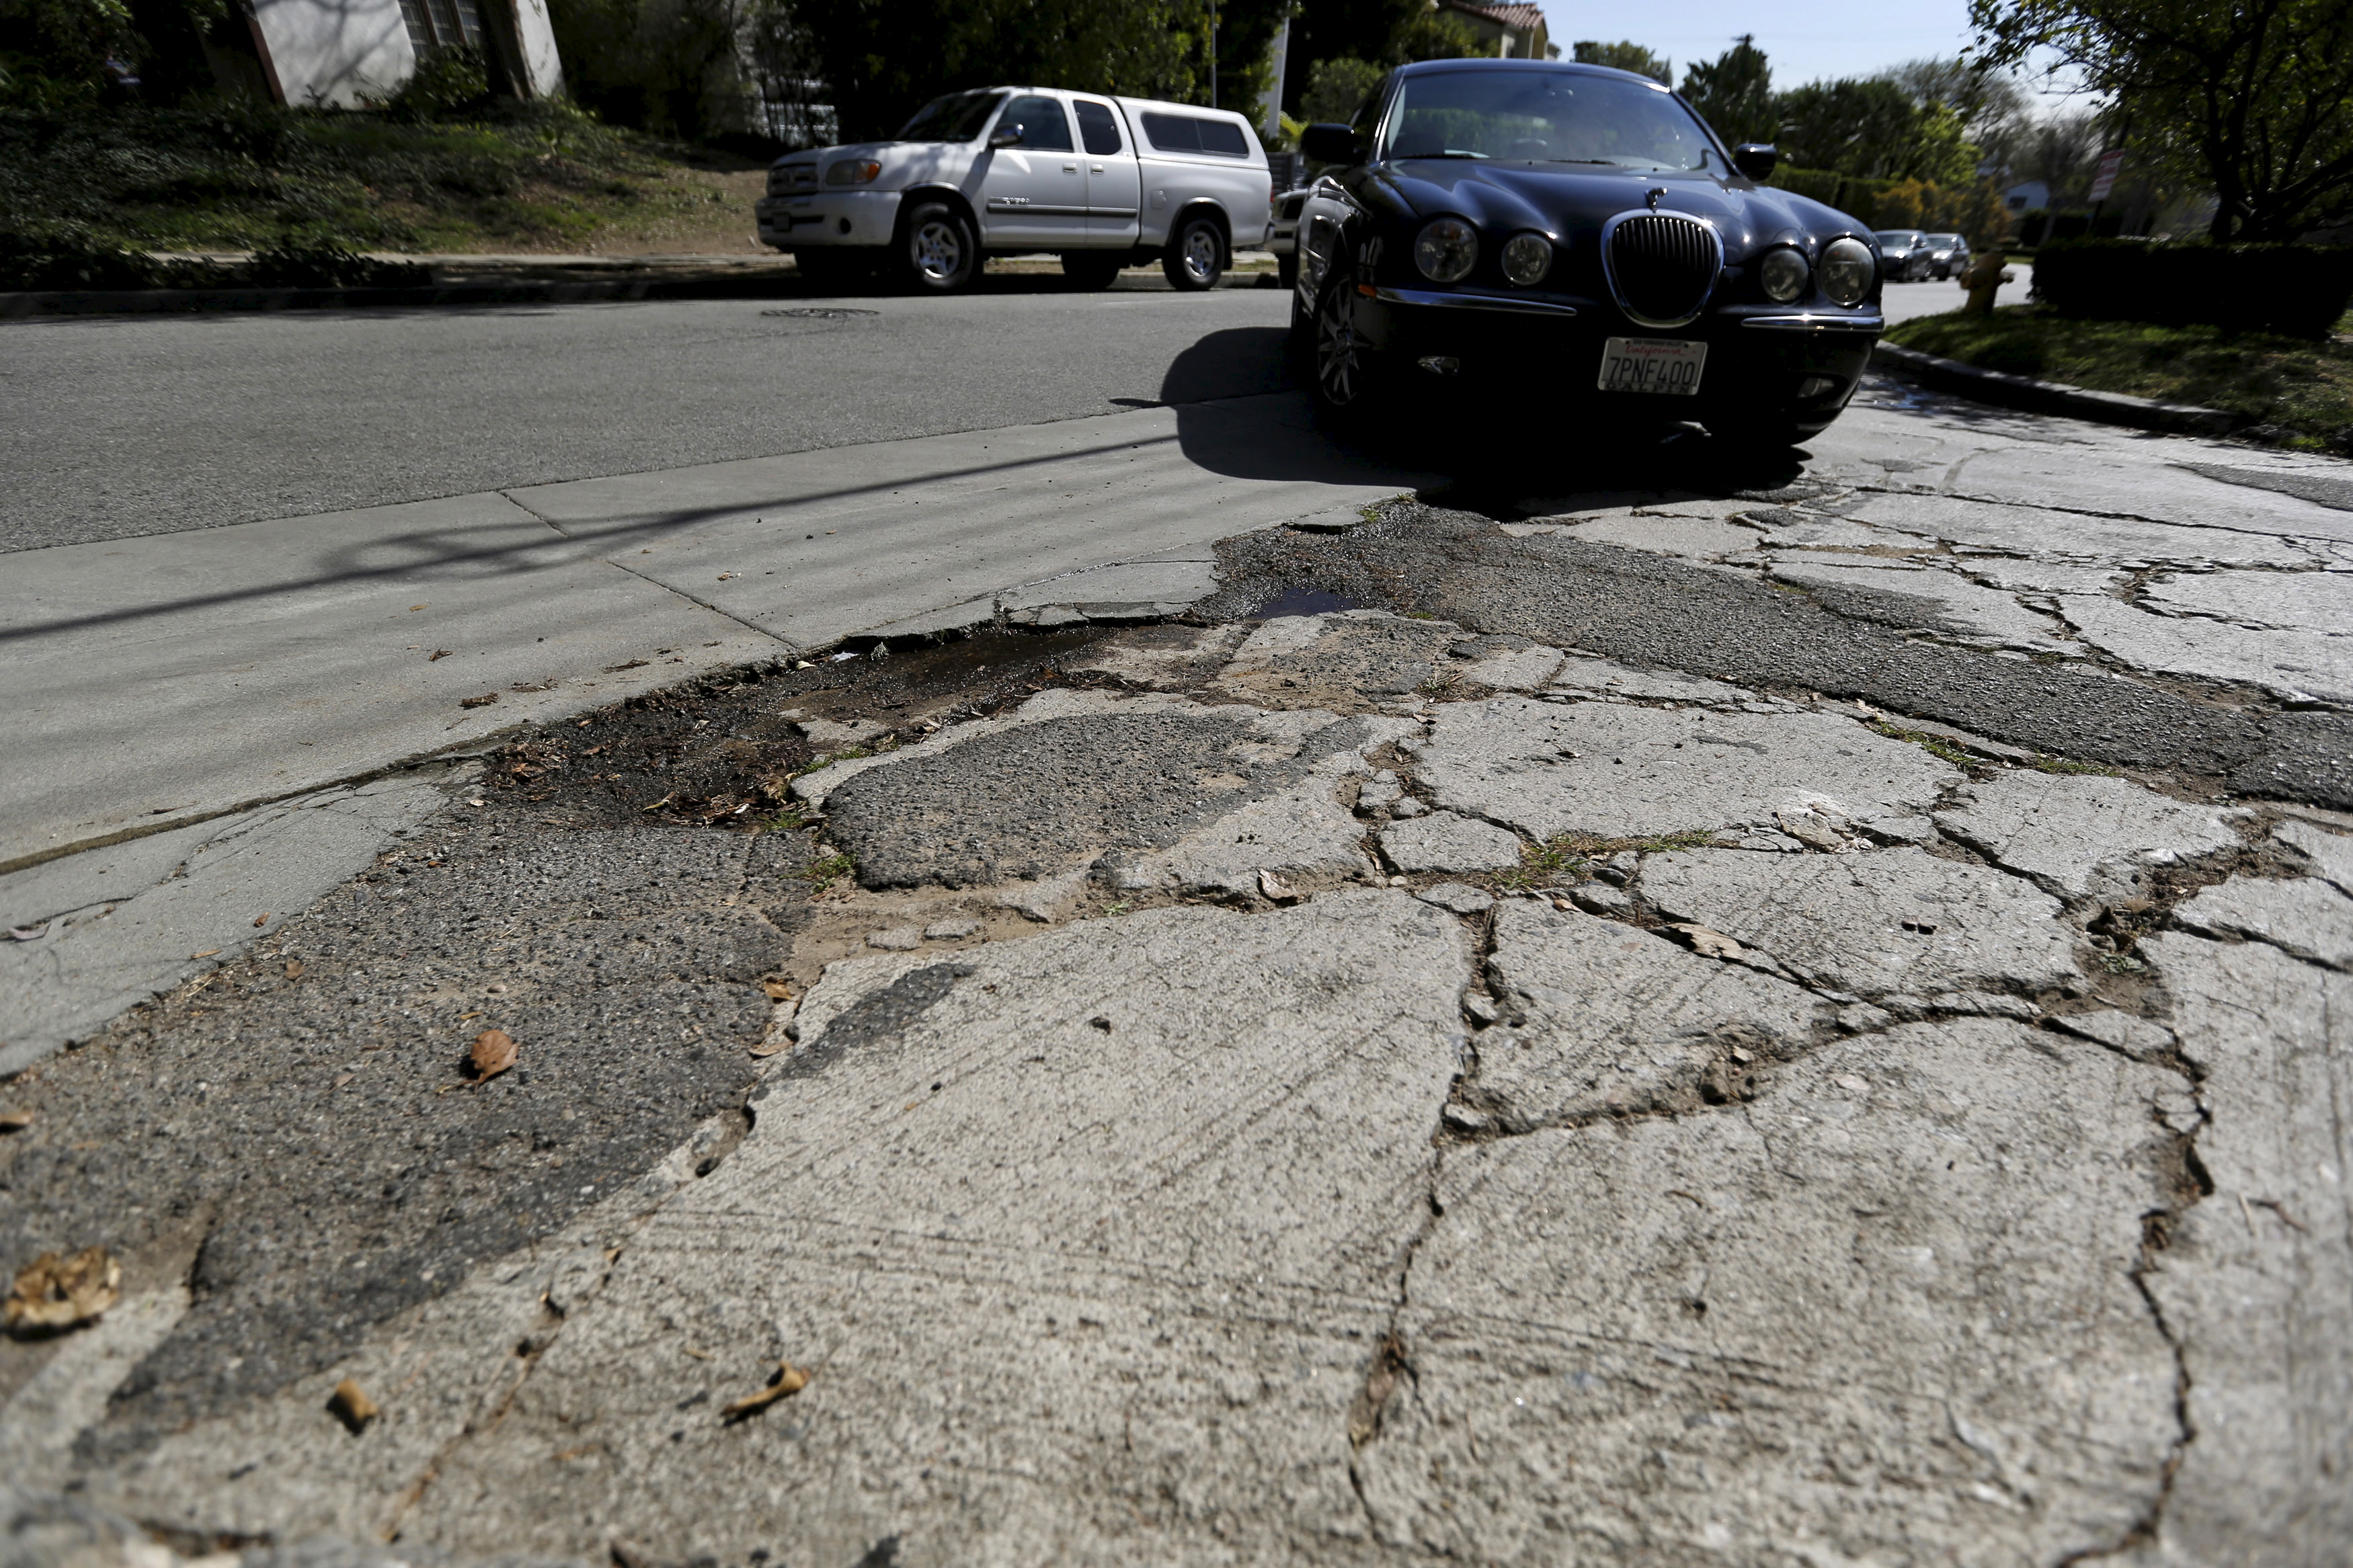 A pothole is pictured on the street of Los Angeles, California